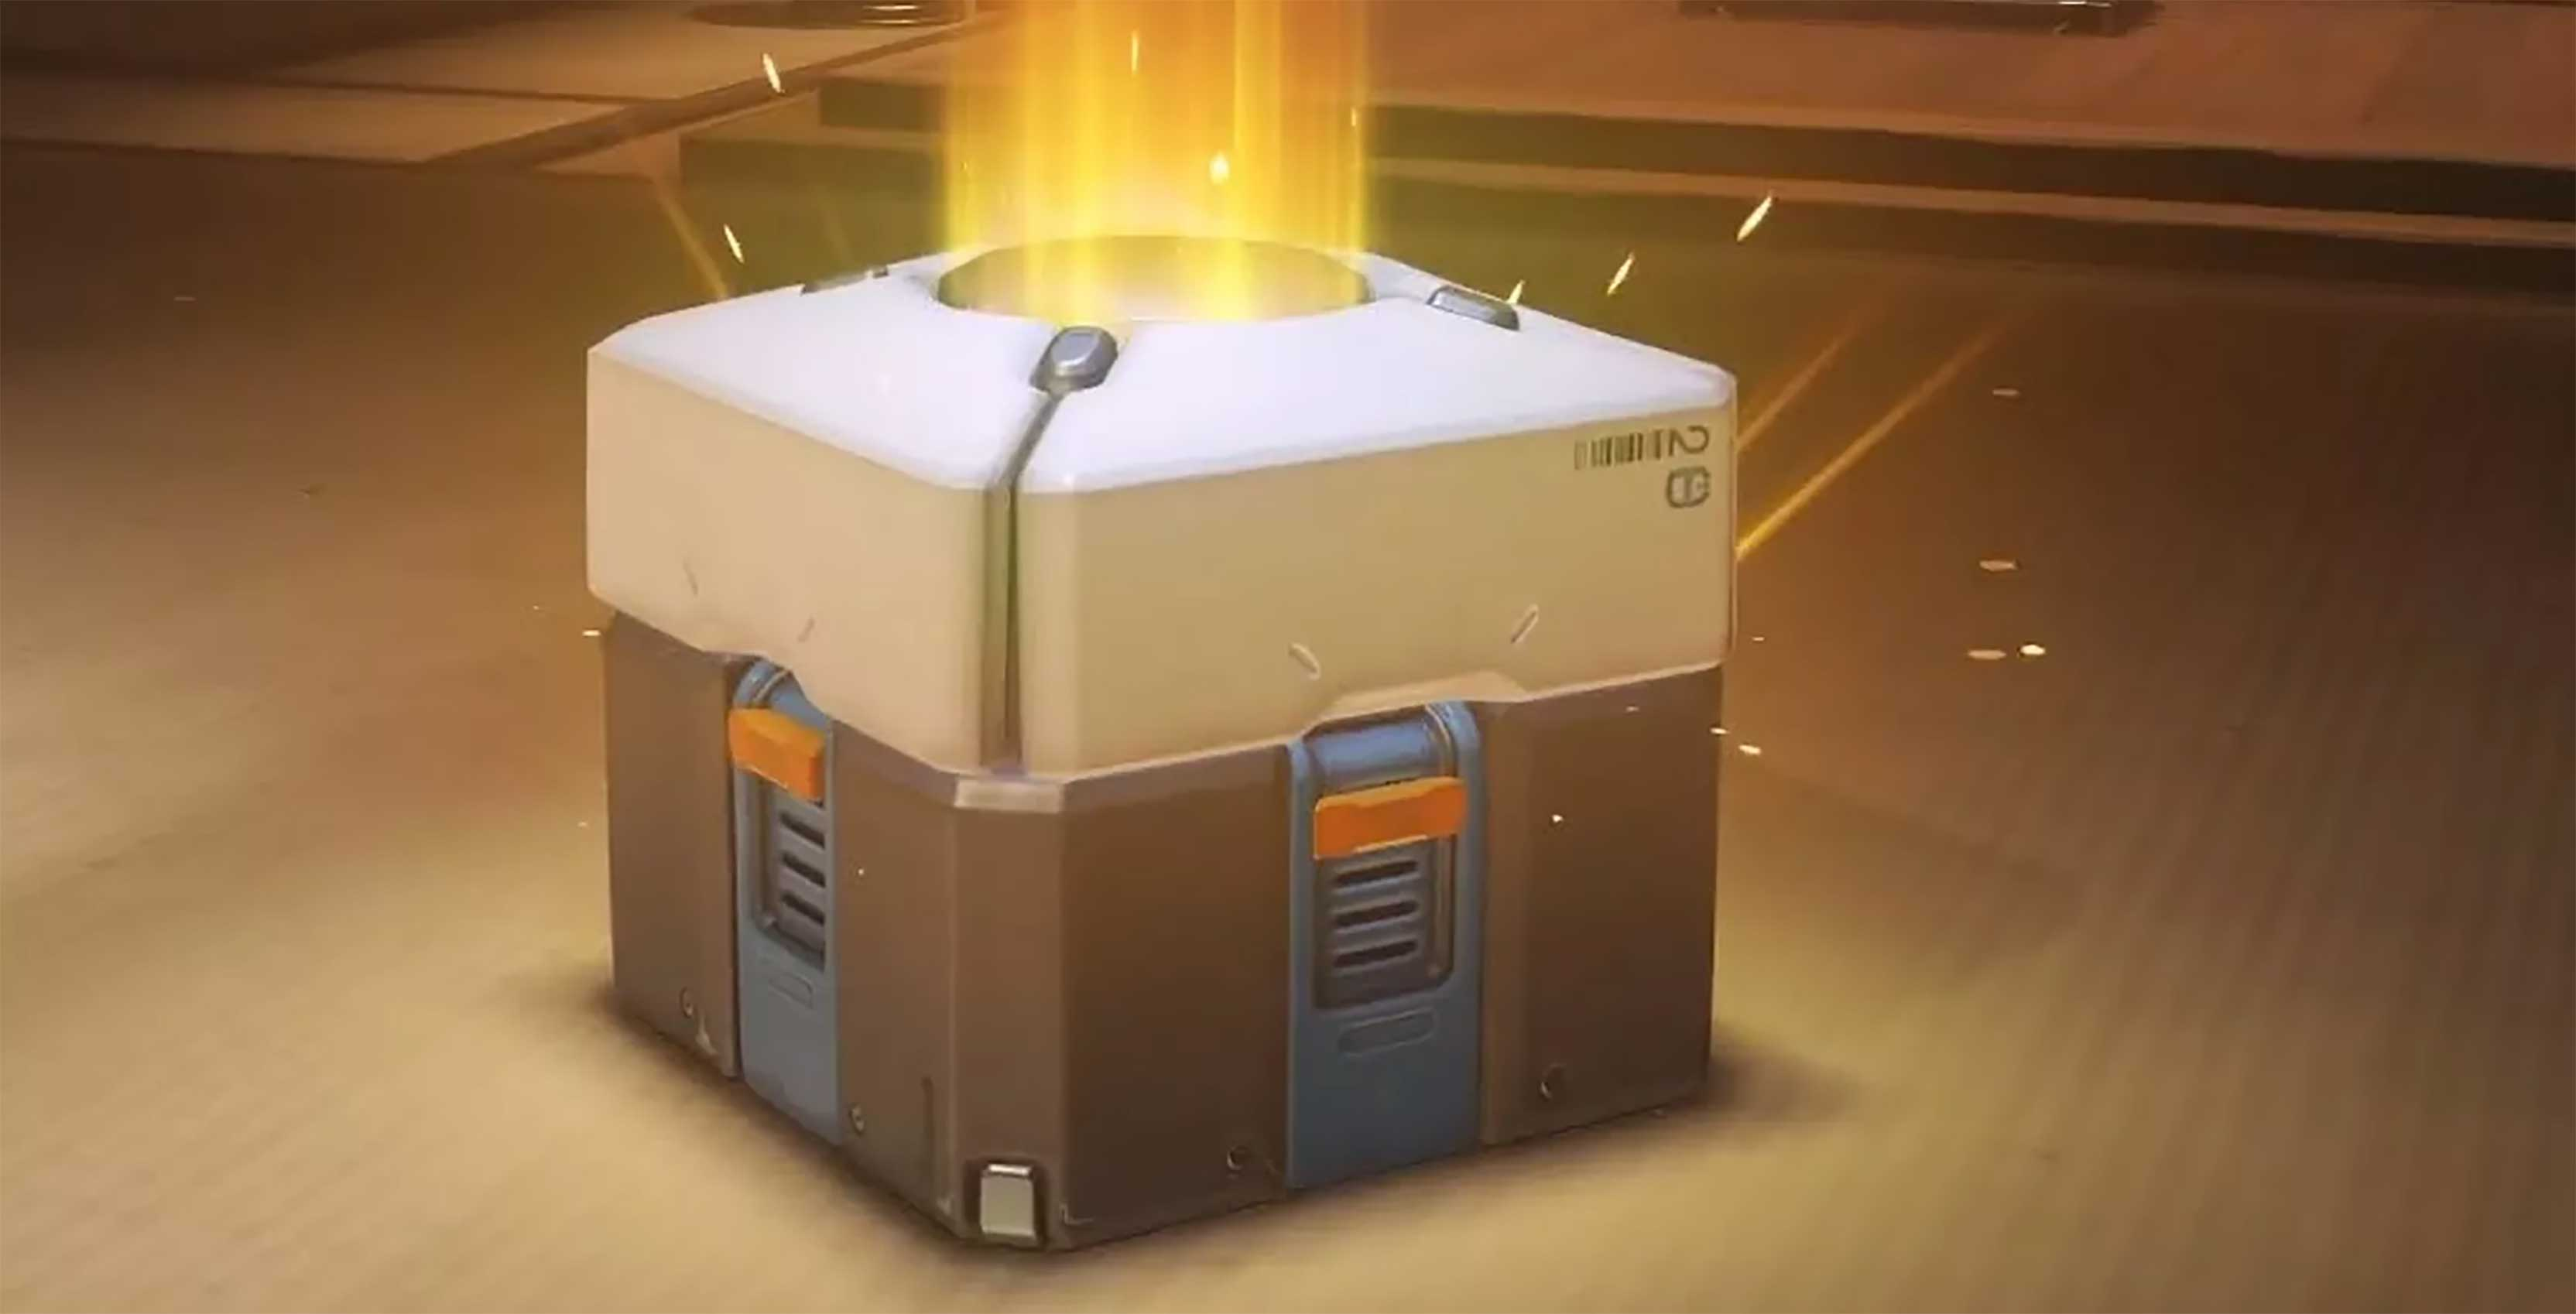 Microsoft, Nintendo and Sony commit to disclosing loot box